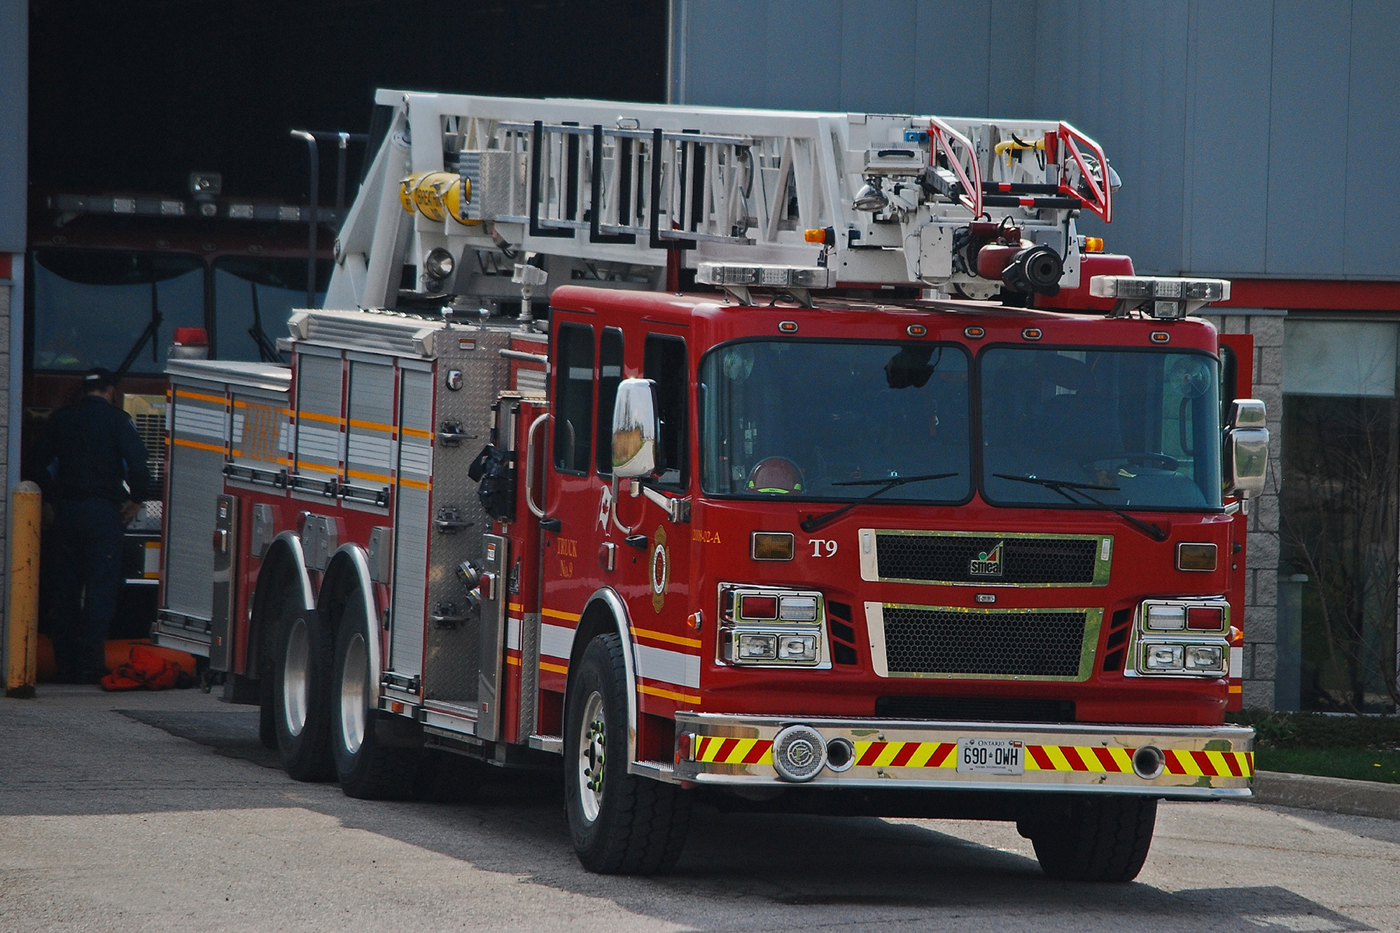 Truck 9 parked in front of Station 11